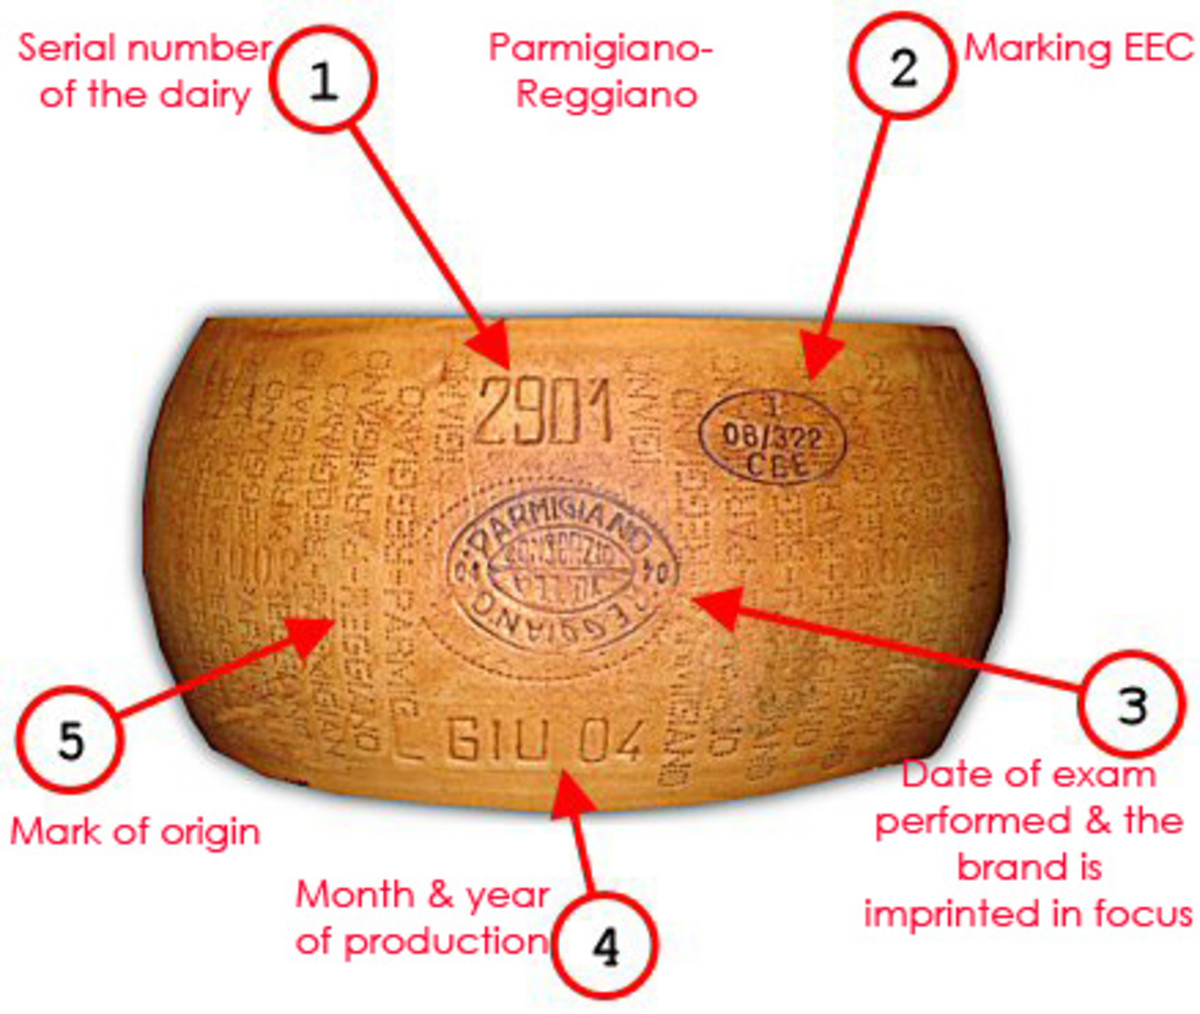 Parmigiano-Reggiano also known in English as Parmesan is a hard granular cheese, cooked but not pressed, named after the producing areas near Parma, Reggio Emilia, Modena, and Bologna.